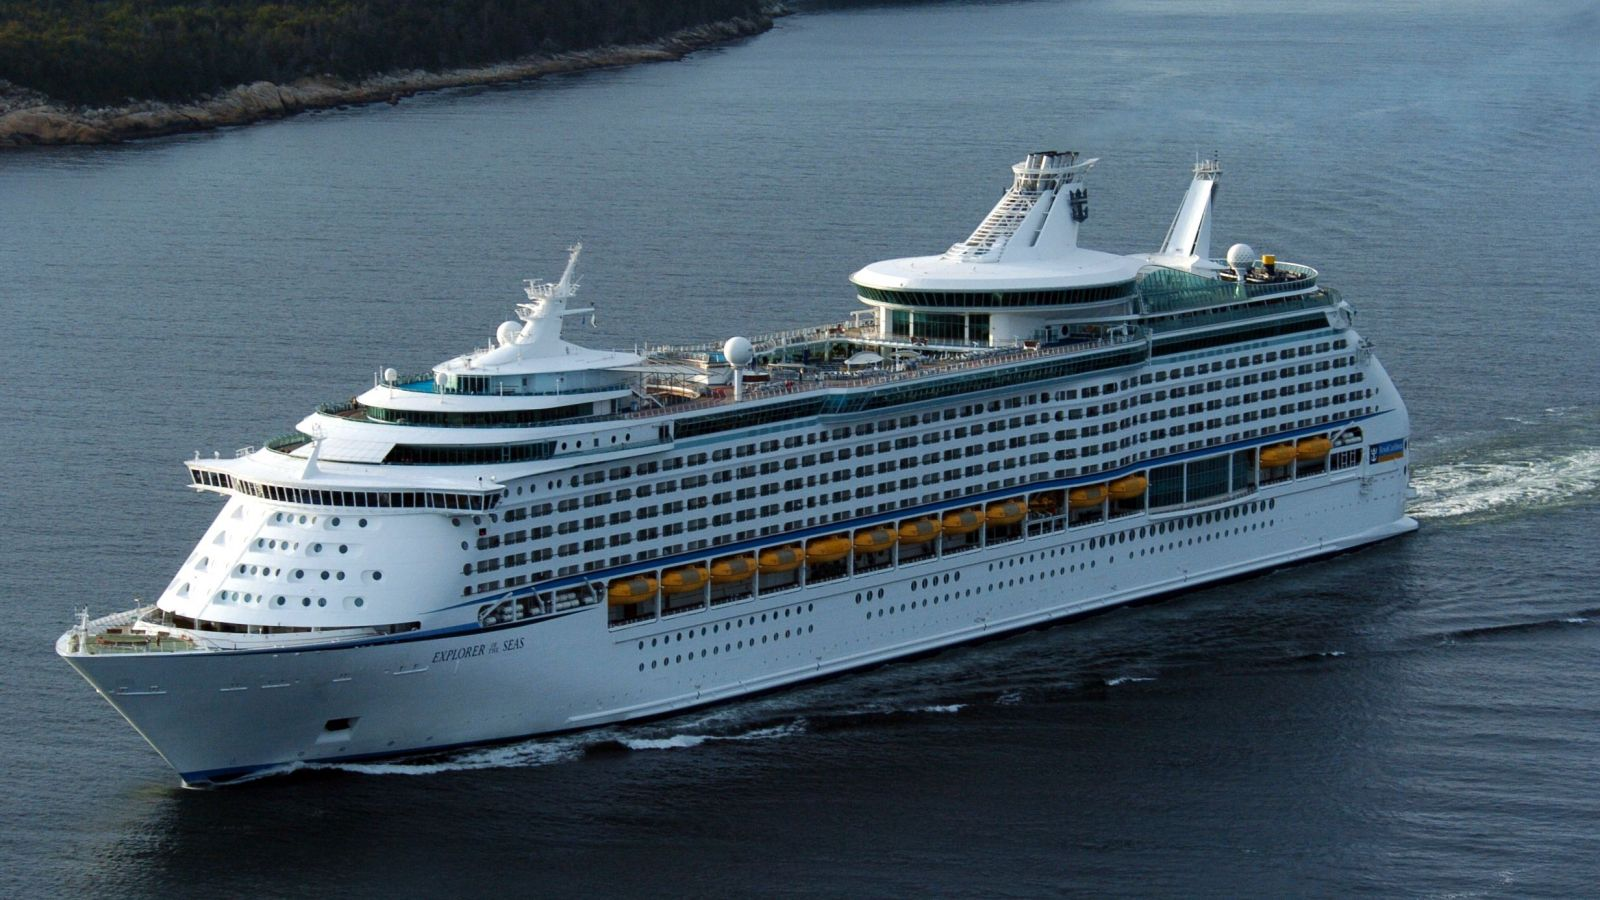 Explore The Beauty Of Caribbean: Stomach Flu Outbreak On Cruise Ship In Australia